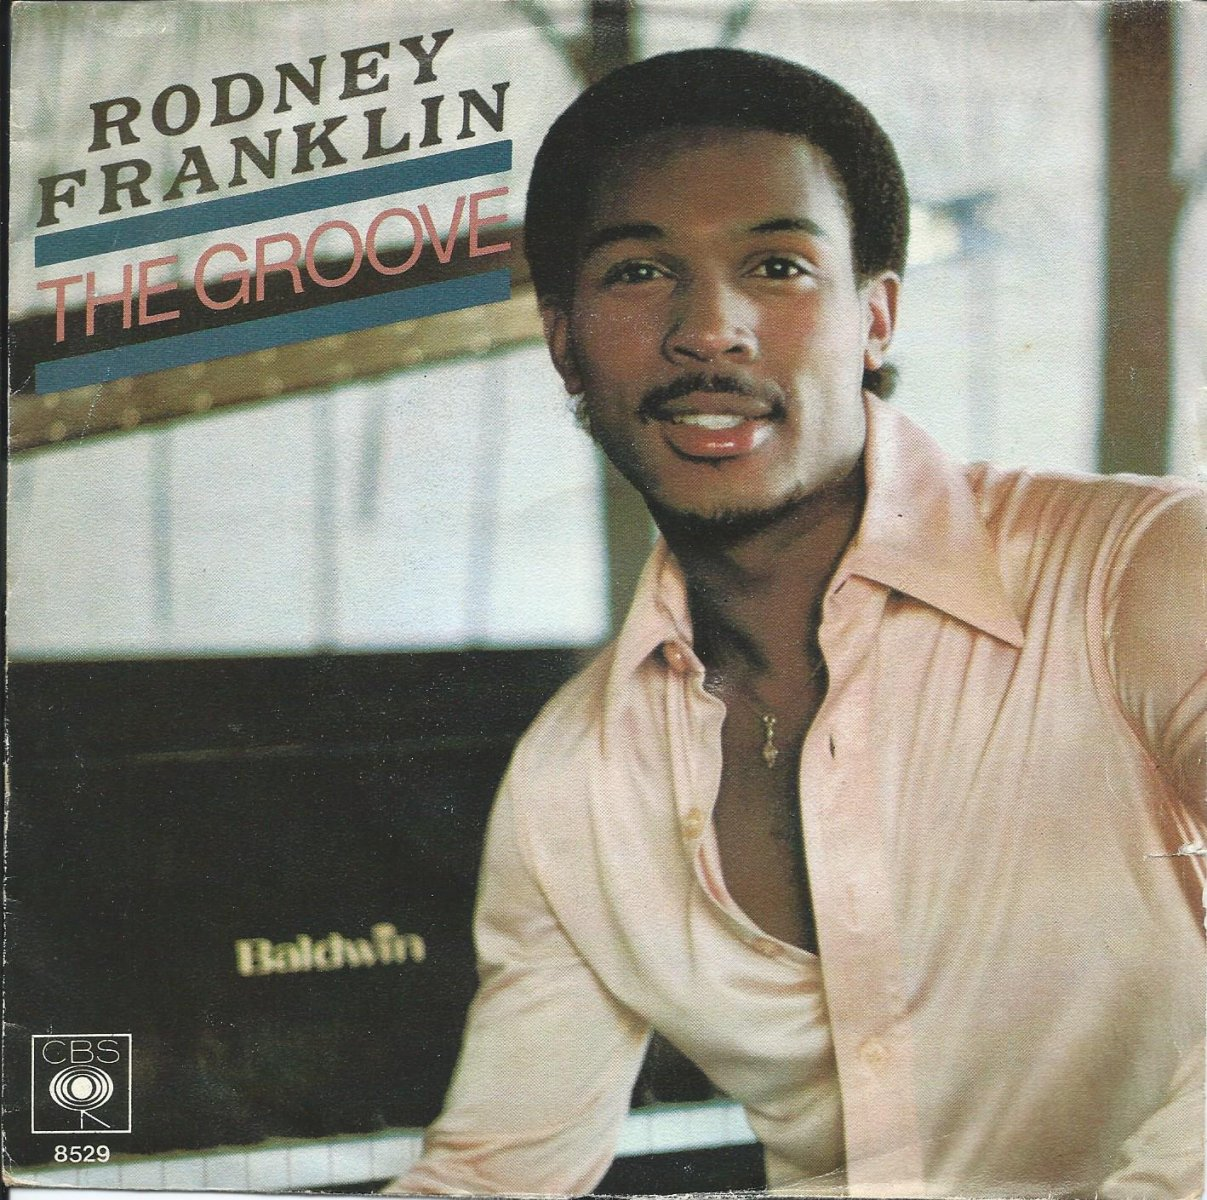 RODNEY FRANKLIN ‎/ THE GROOVE / GOD BLESS THE BLUES (7